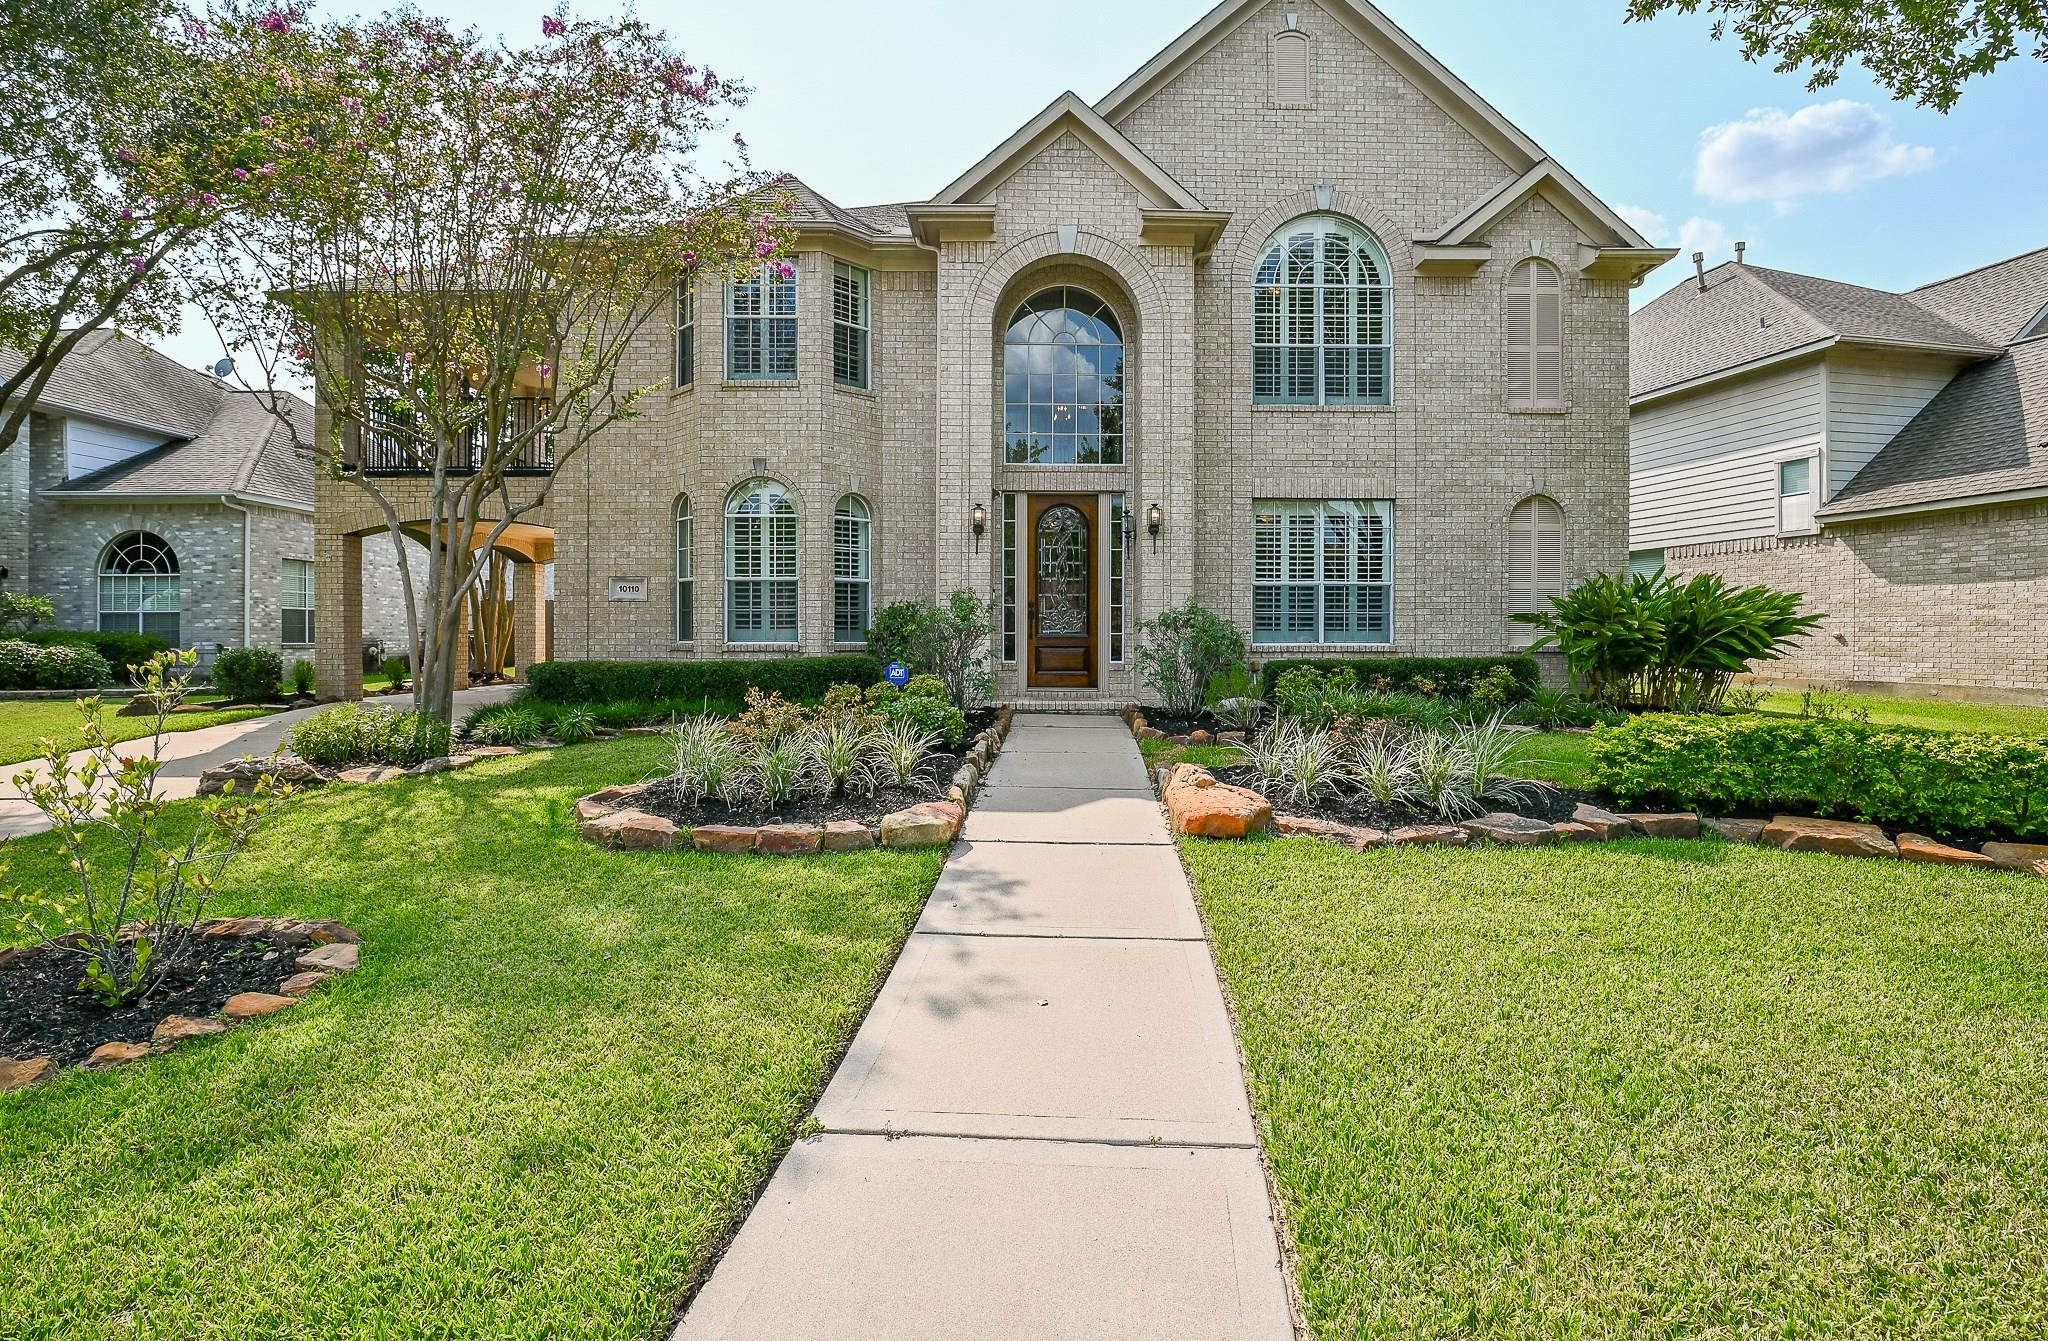 10110 Dallam Lane Property Photo - Houston, TX real estate listing